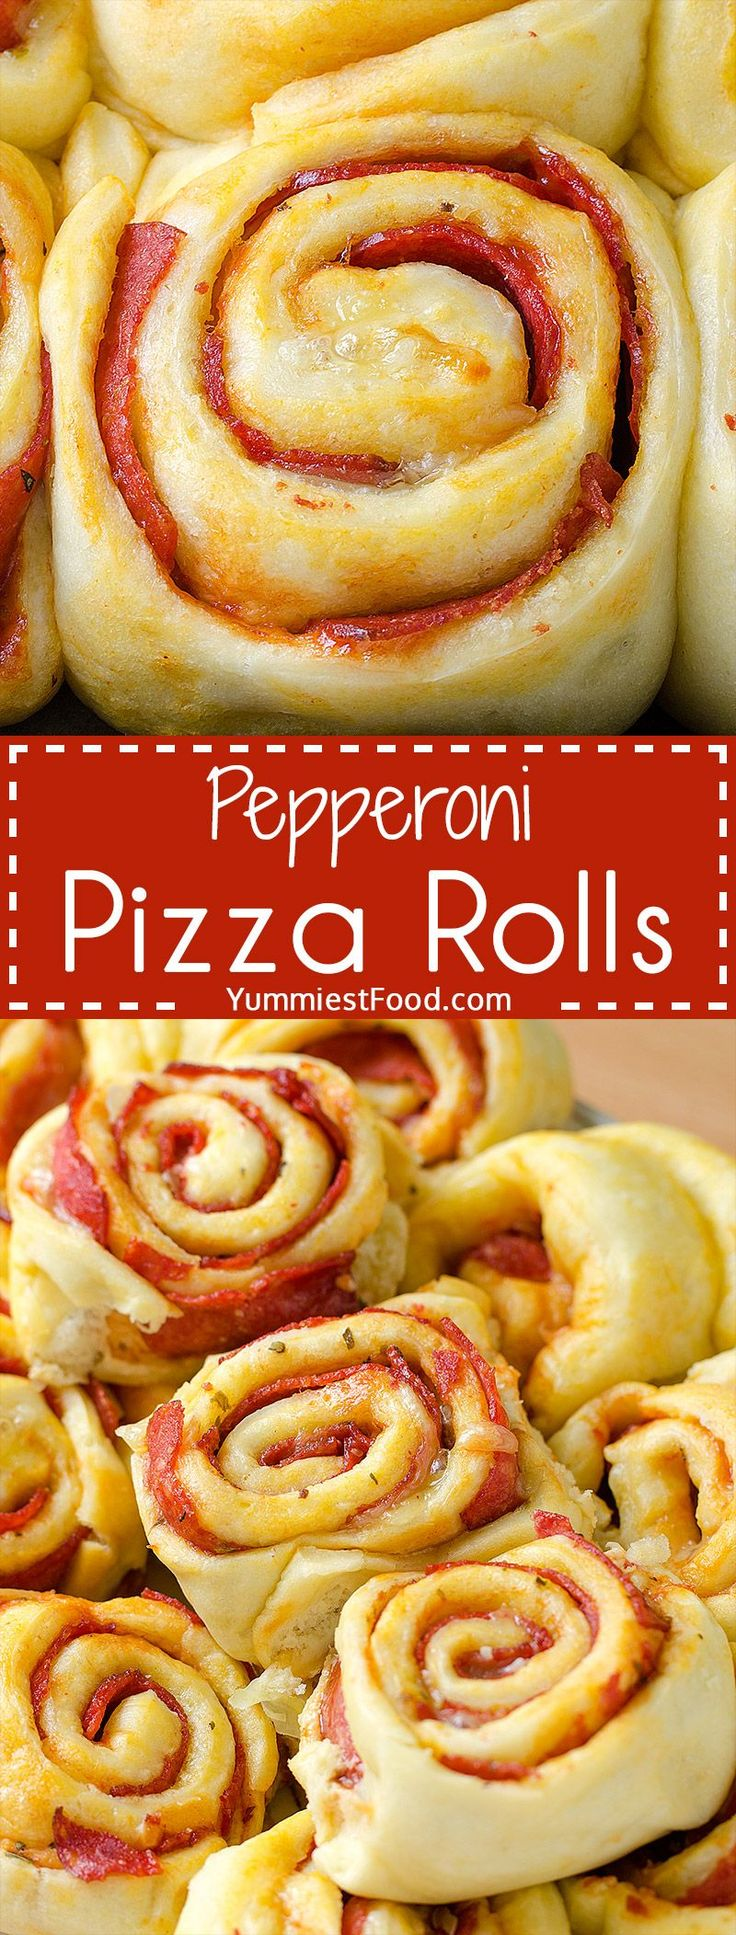 Pepperoni Pizza Rolls – so nice and easy way to enjoy pizza! These Pepperoni Pizza Rolls are perfect for every occasion! Real hit for party snack! (easy baking recipes snacks)